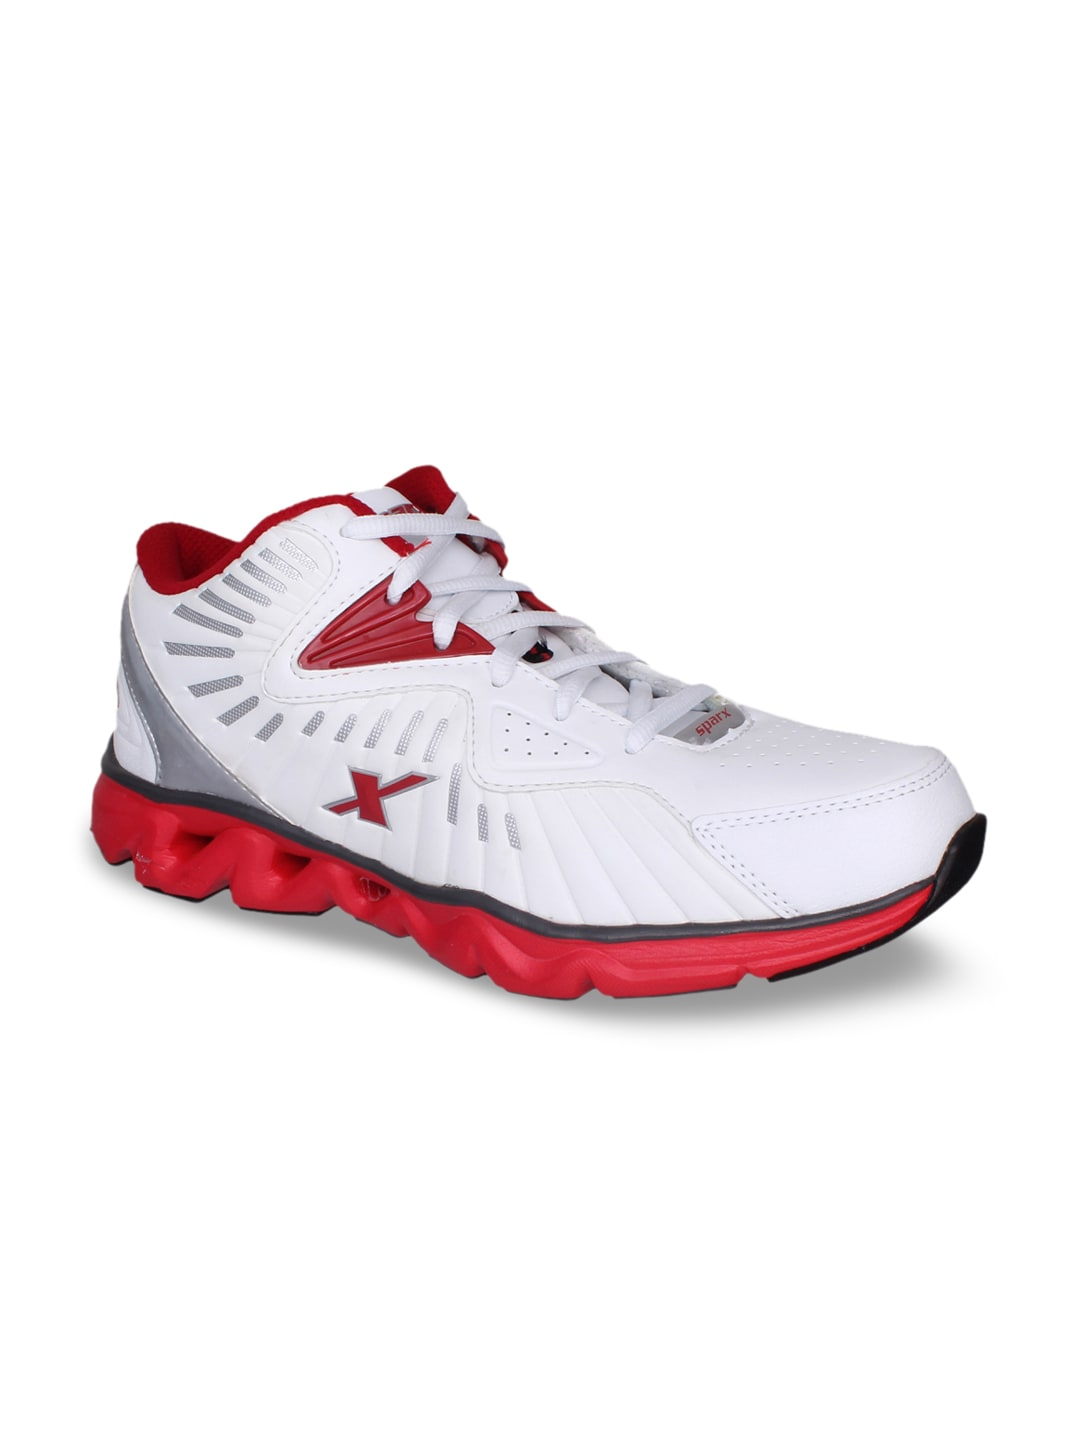 ccf6ad41519 White Sports Shoes - Buy White Sports